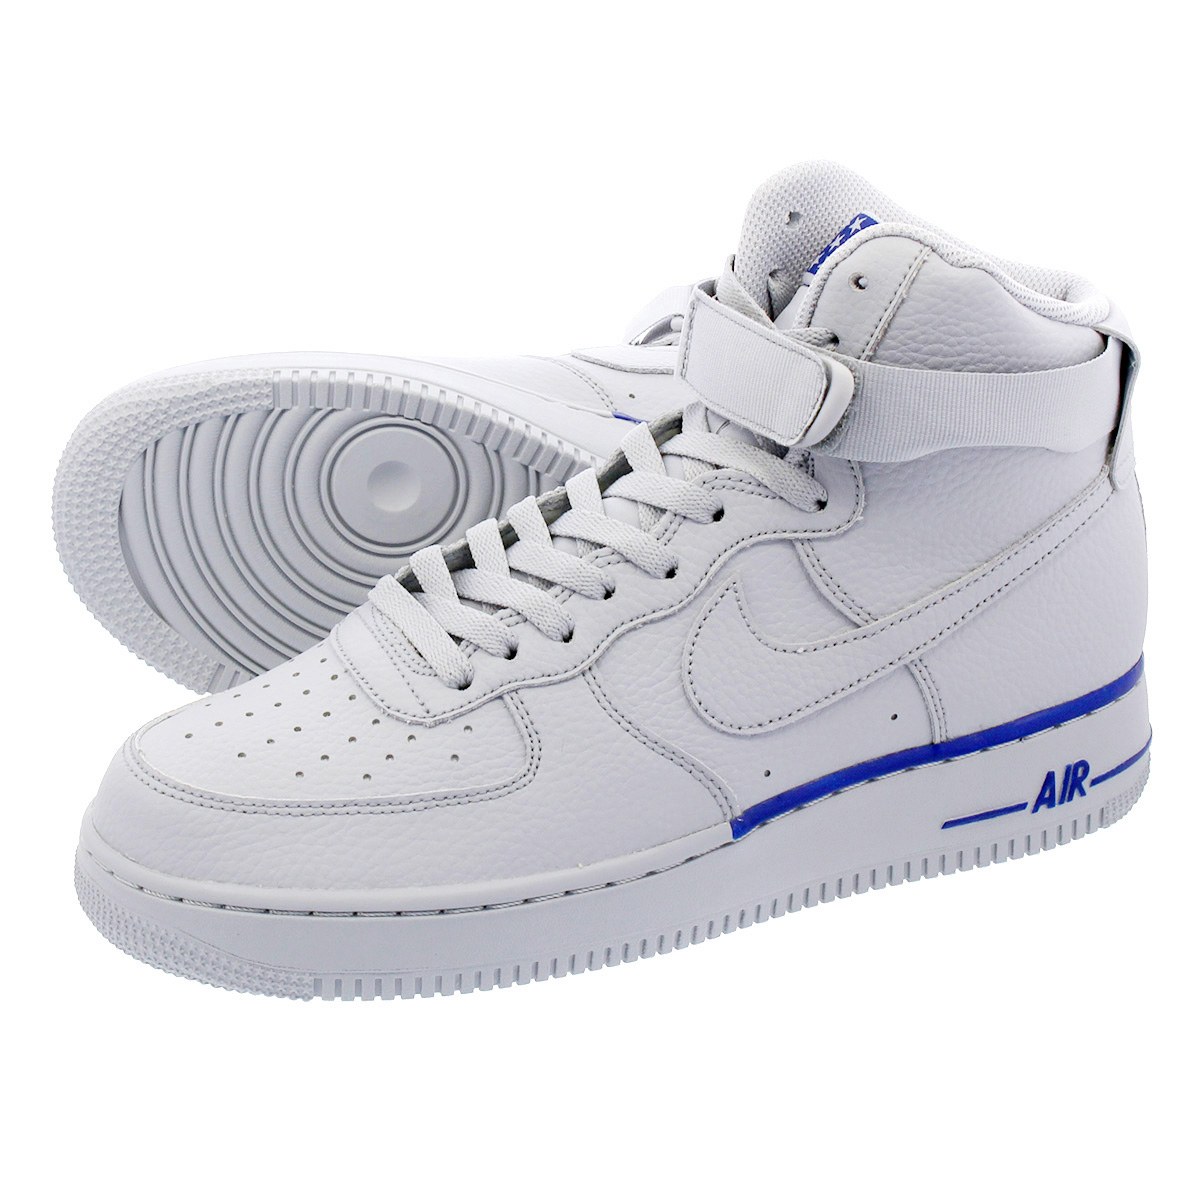 new arrival 7a6ce d2e46 NIKE AIR FORCE 1 HIGH 07 Nike air force 1 high 07 WOLF GREY DEEP ...